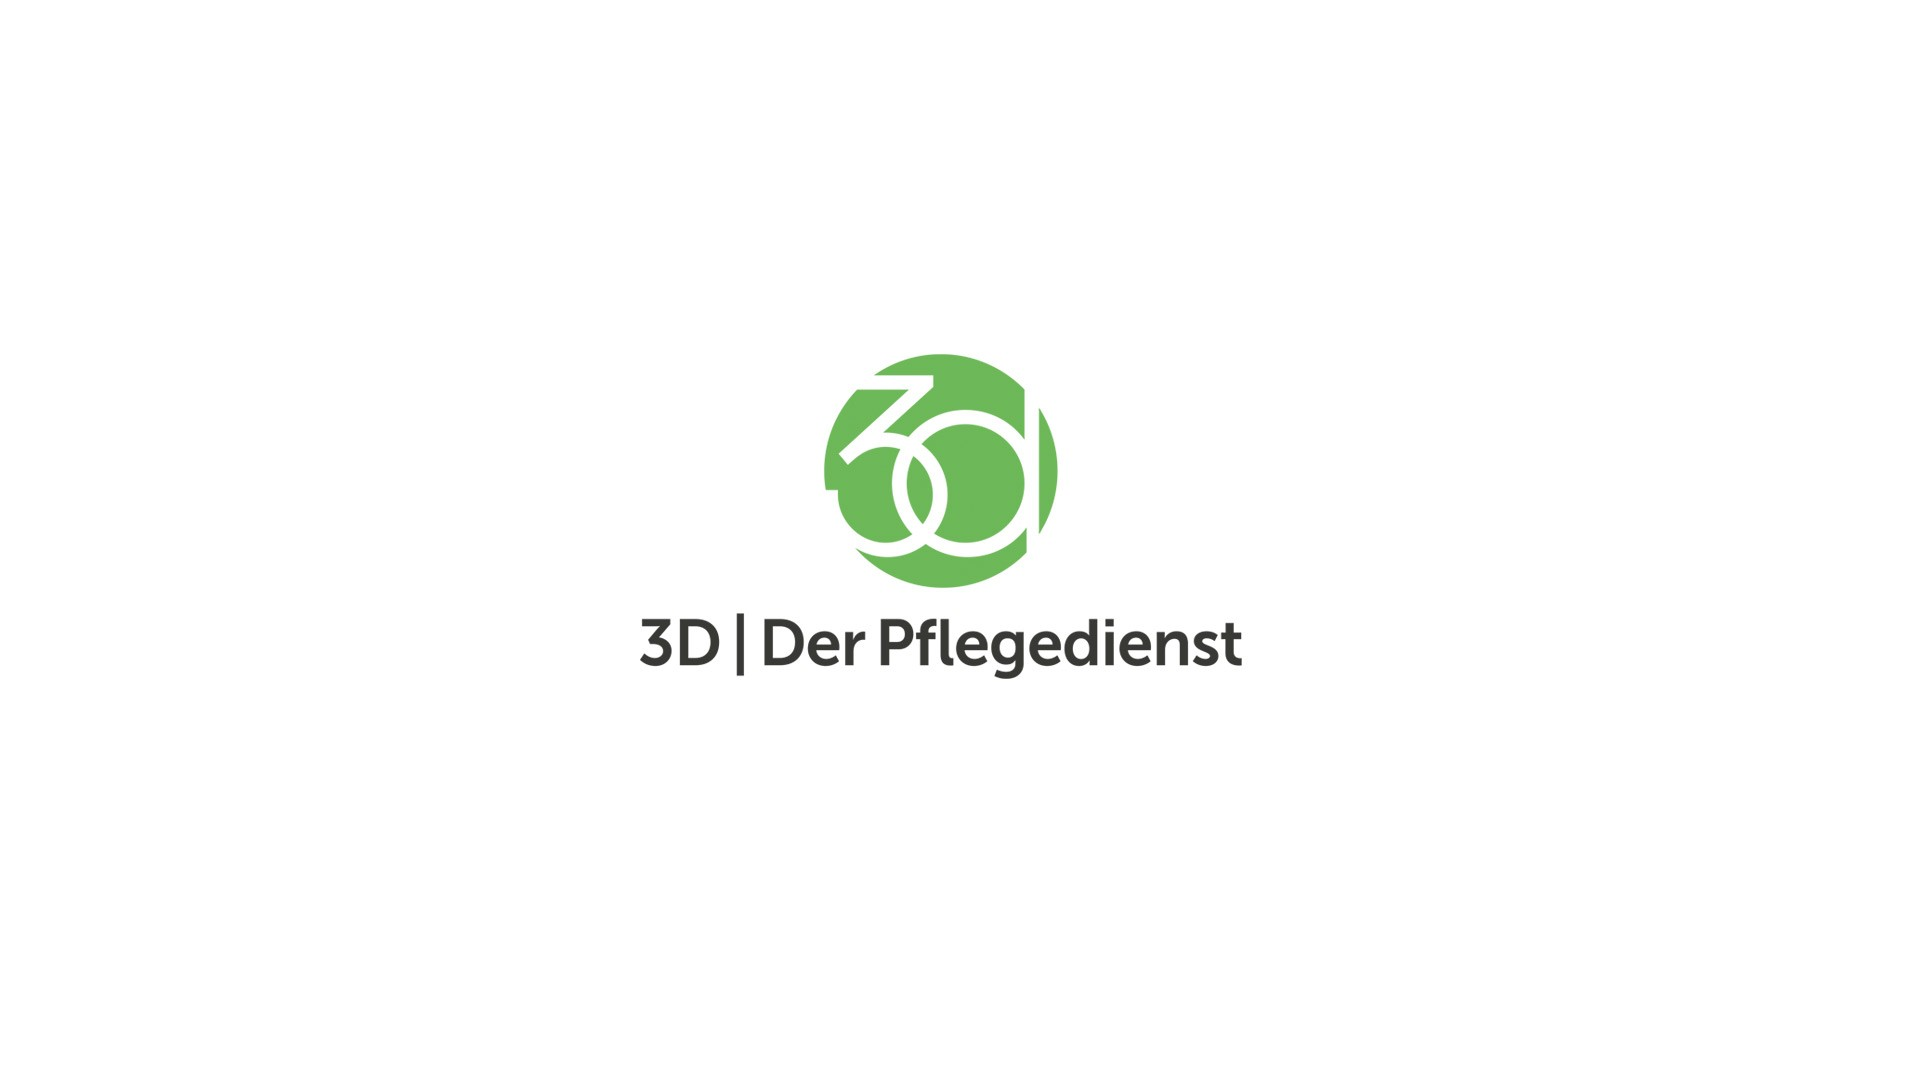 BUREAU KUEPPERS Corporate Identity für 3D | Der Pflegedienst